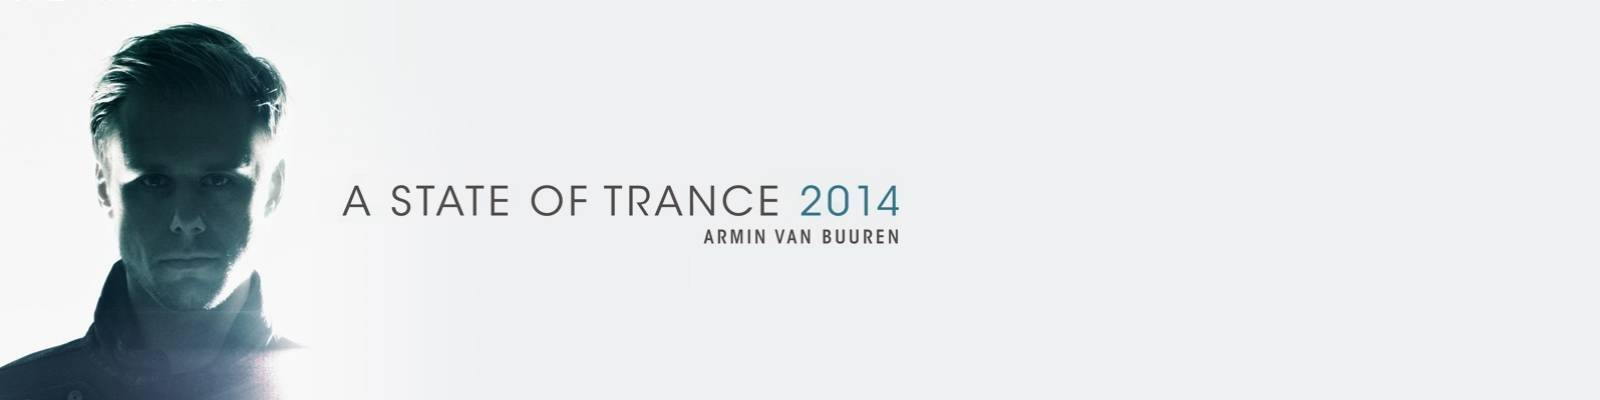 Armin van Buuren – A State Of Trance 2014 out now!